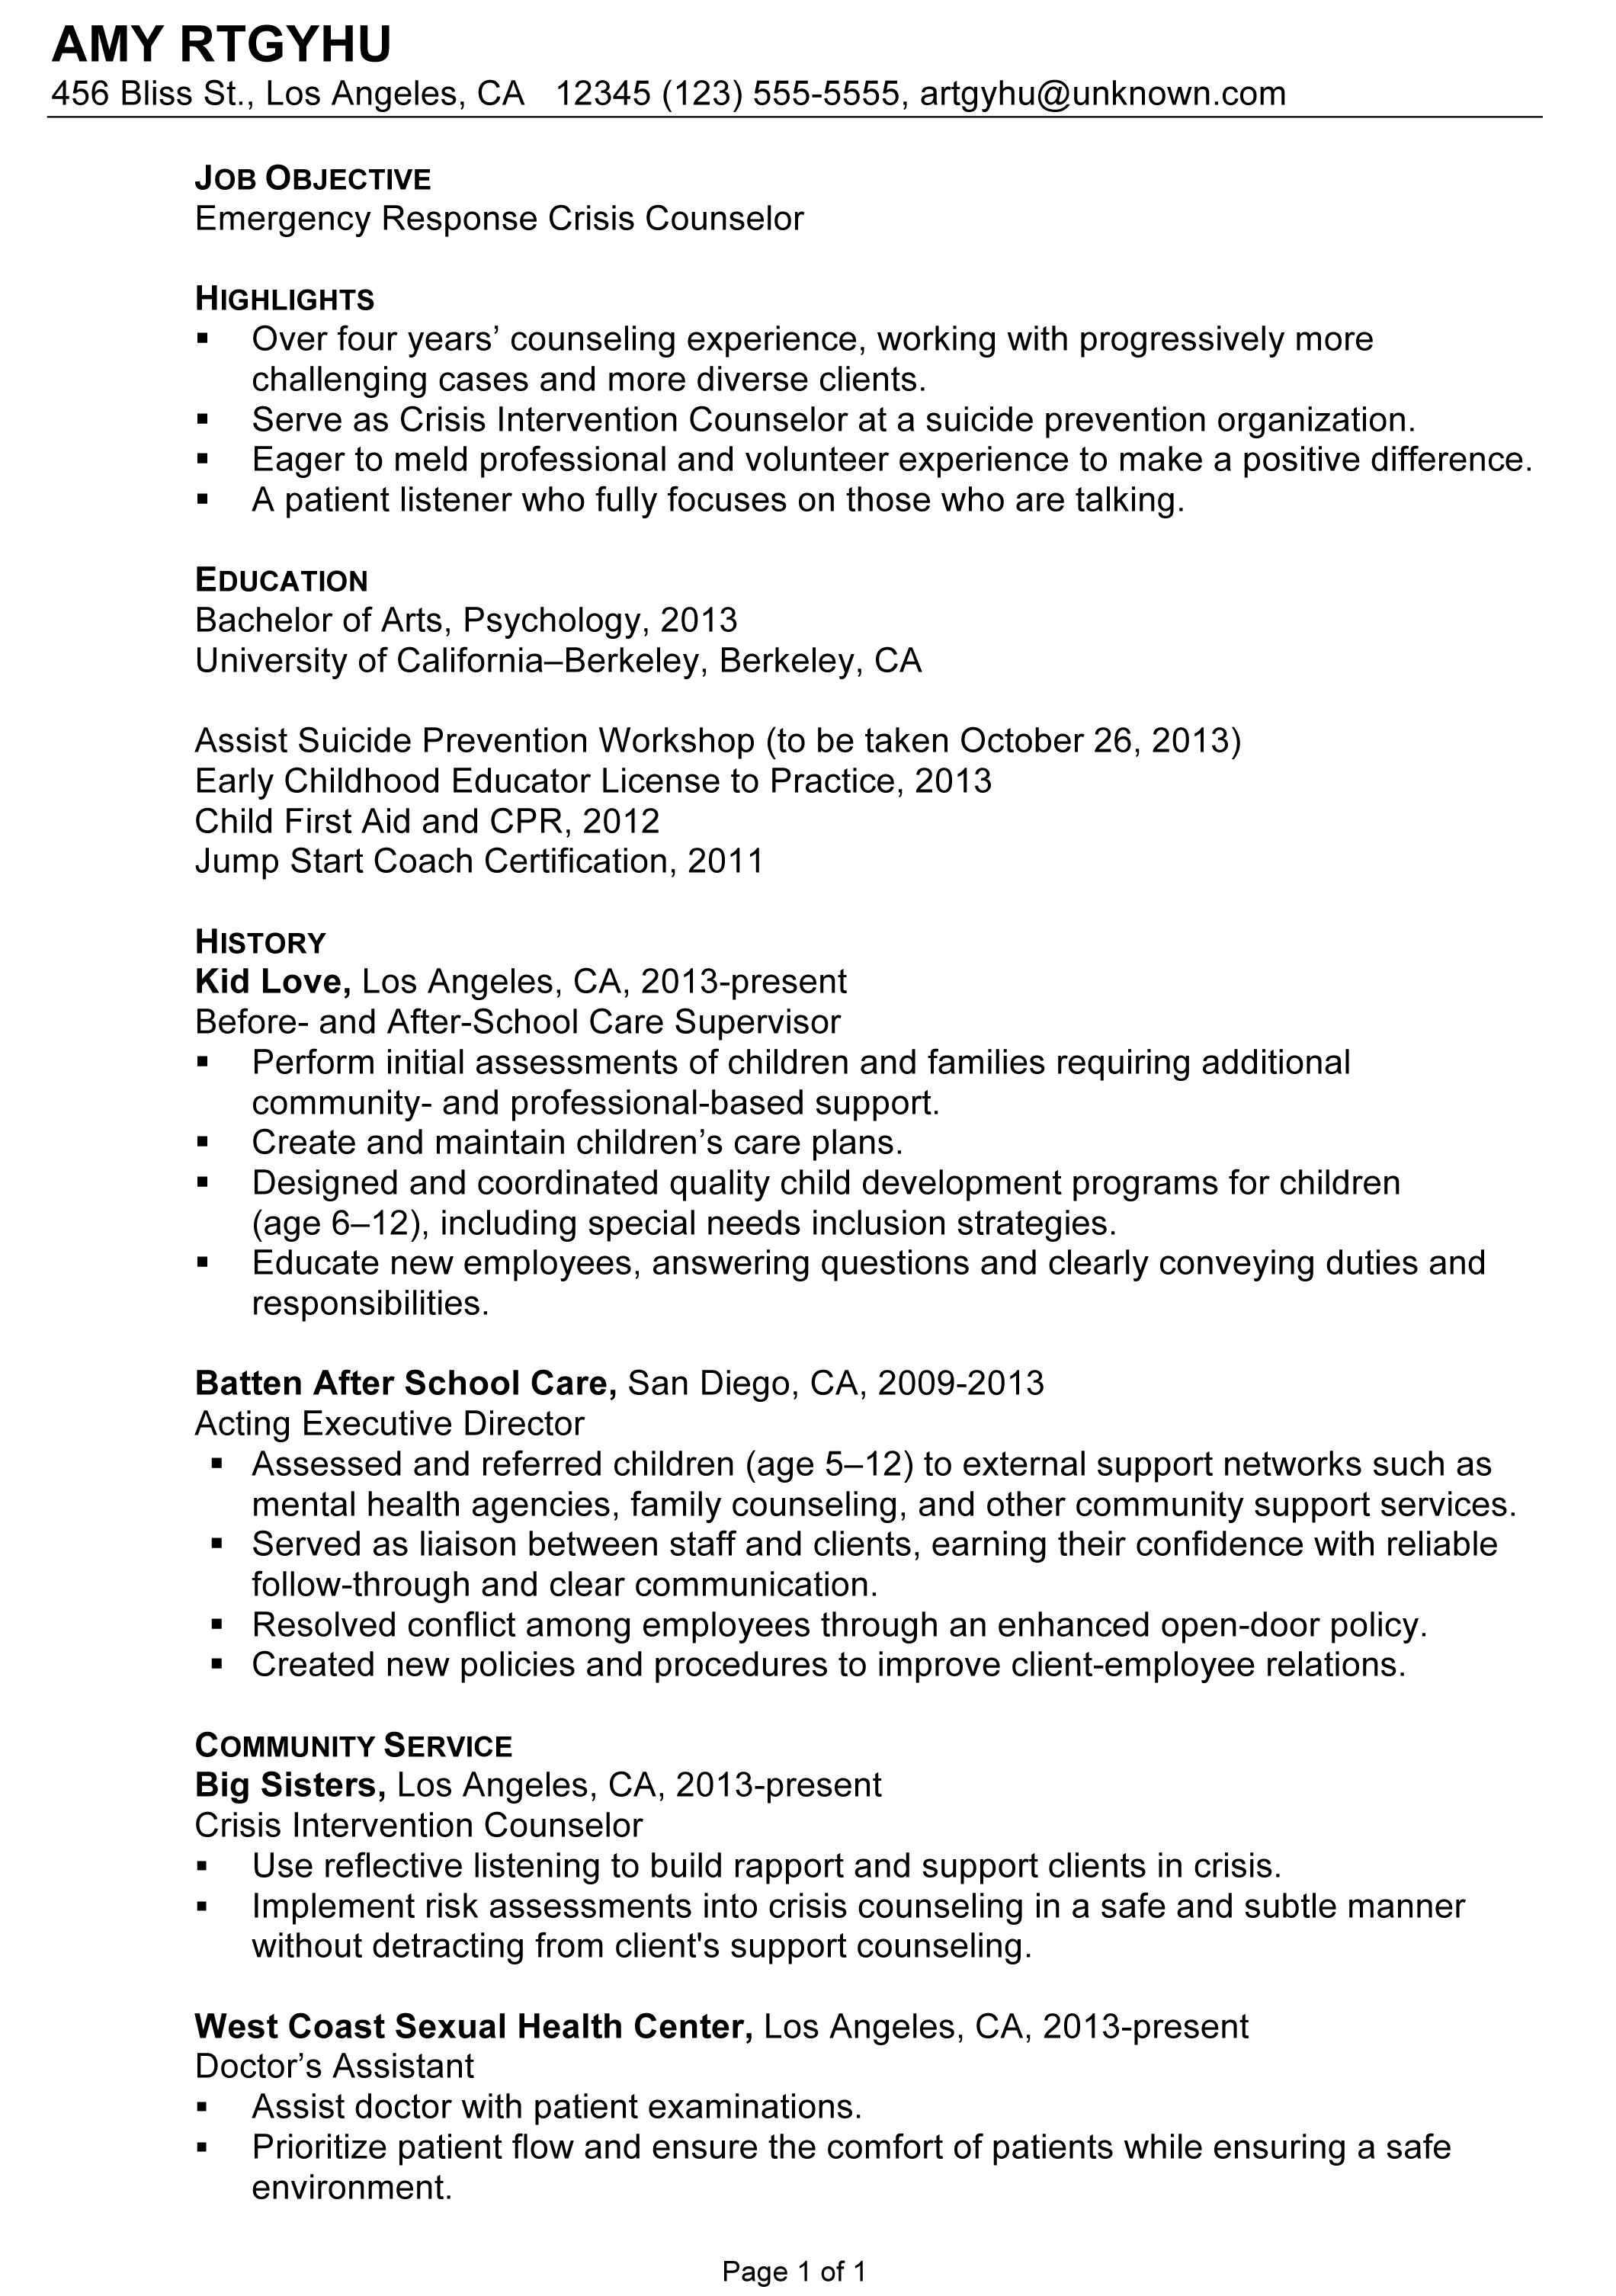 Chronological Resume Template Chronological Resume Sample Emergency Response Crisis Counselor